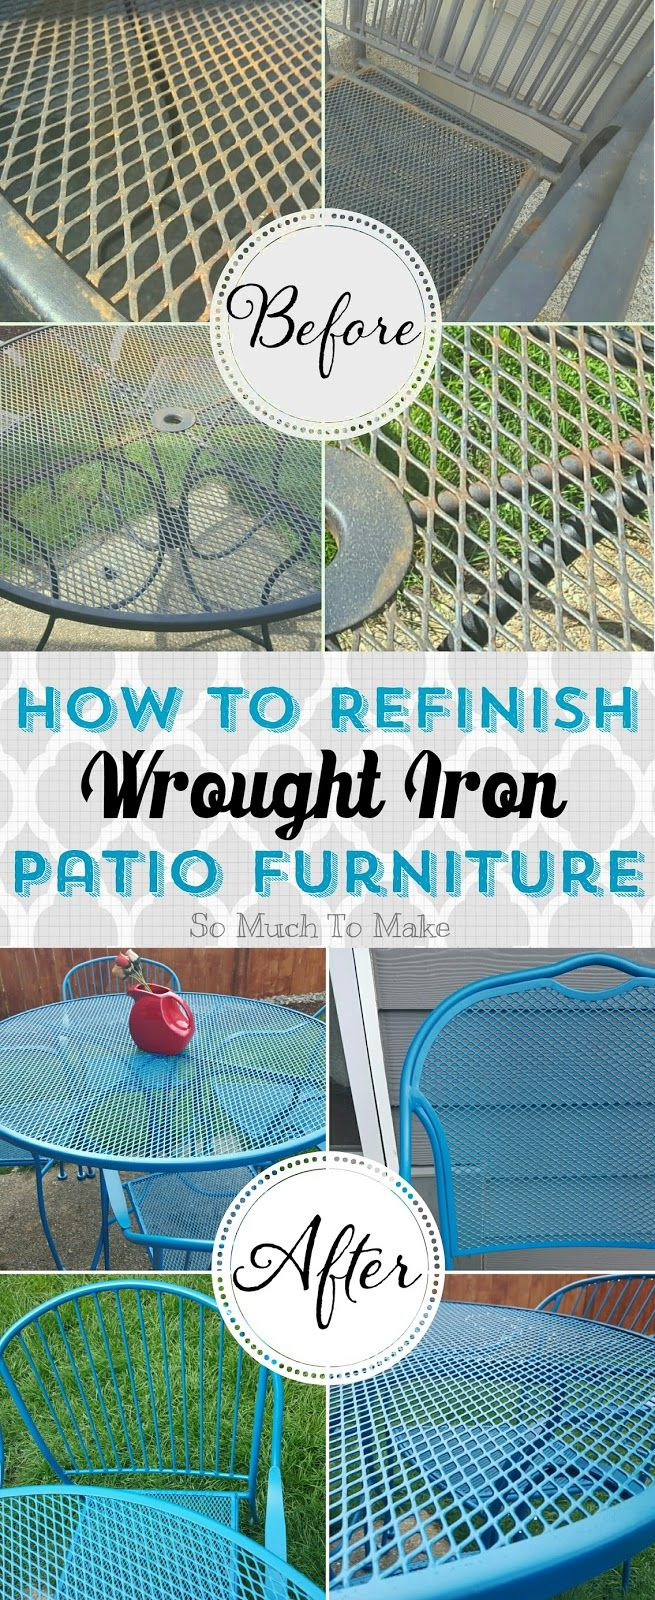 How To Refinish Wrought Iron Patio Furniture Diy Instructions Turn Rusty Old Into Bright Like New